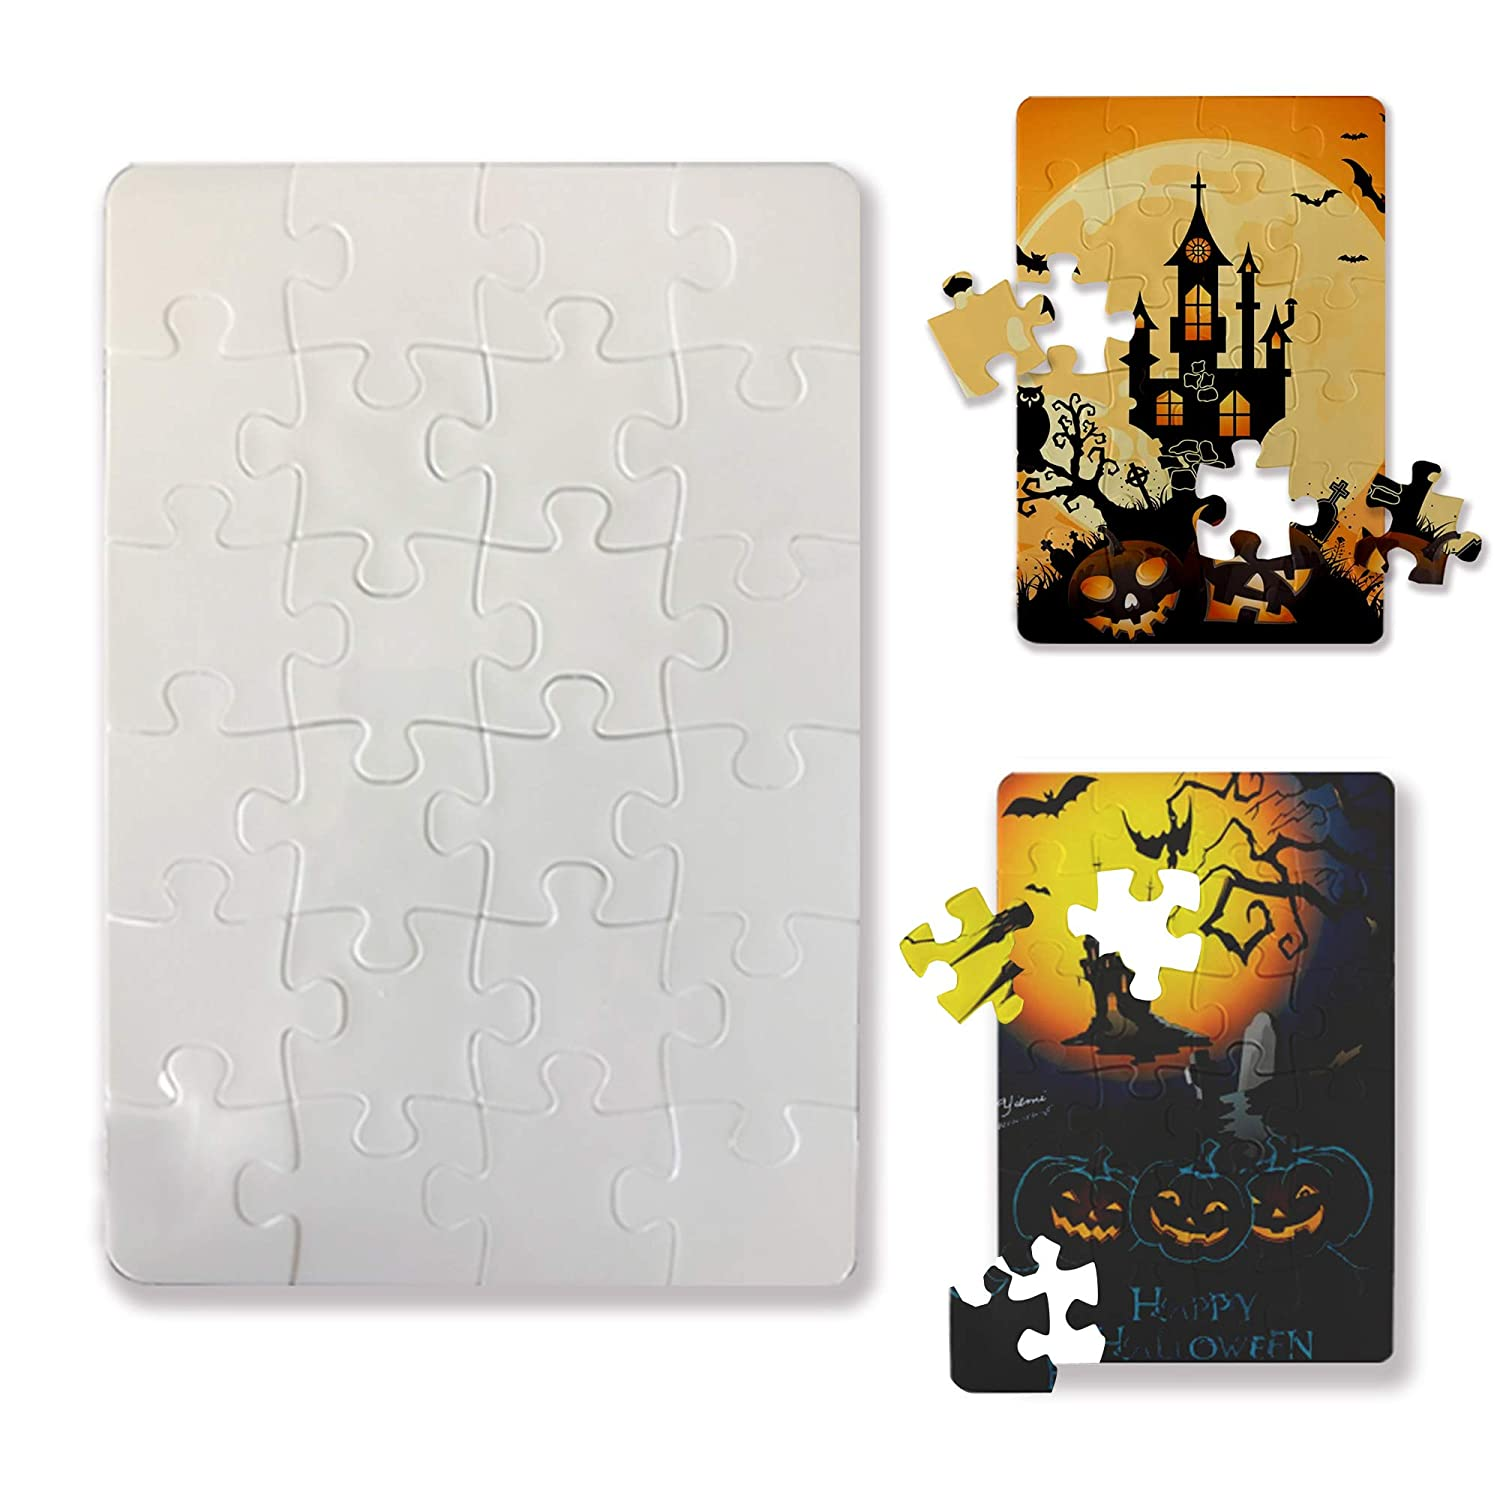 Bosstop 5X7.5 Blanks White DIY Custom Plastic Jigsaw Halloween Puzzle 24-Pieces 4 Puzzles Per Package for Sublimation Blanks Heat Press